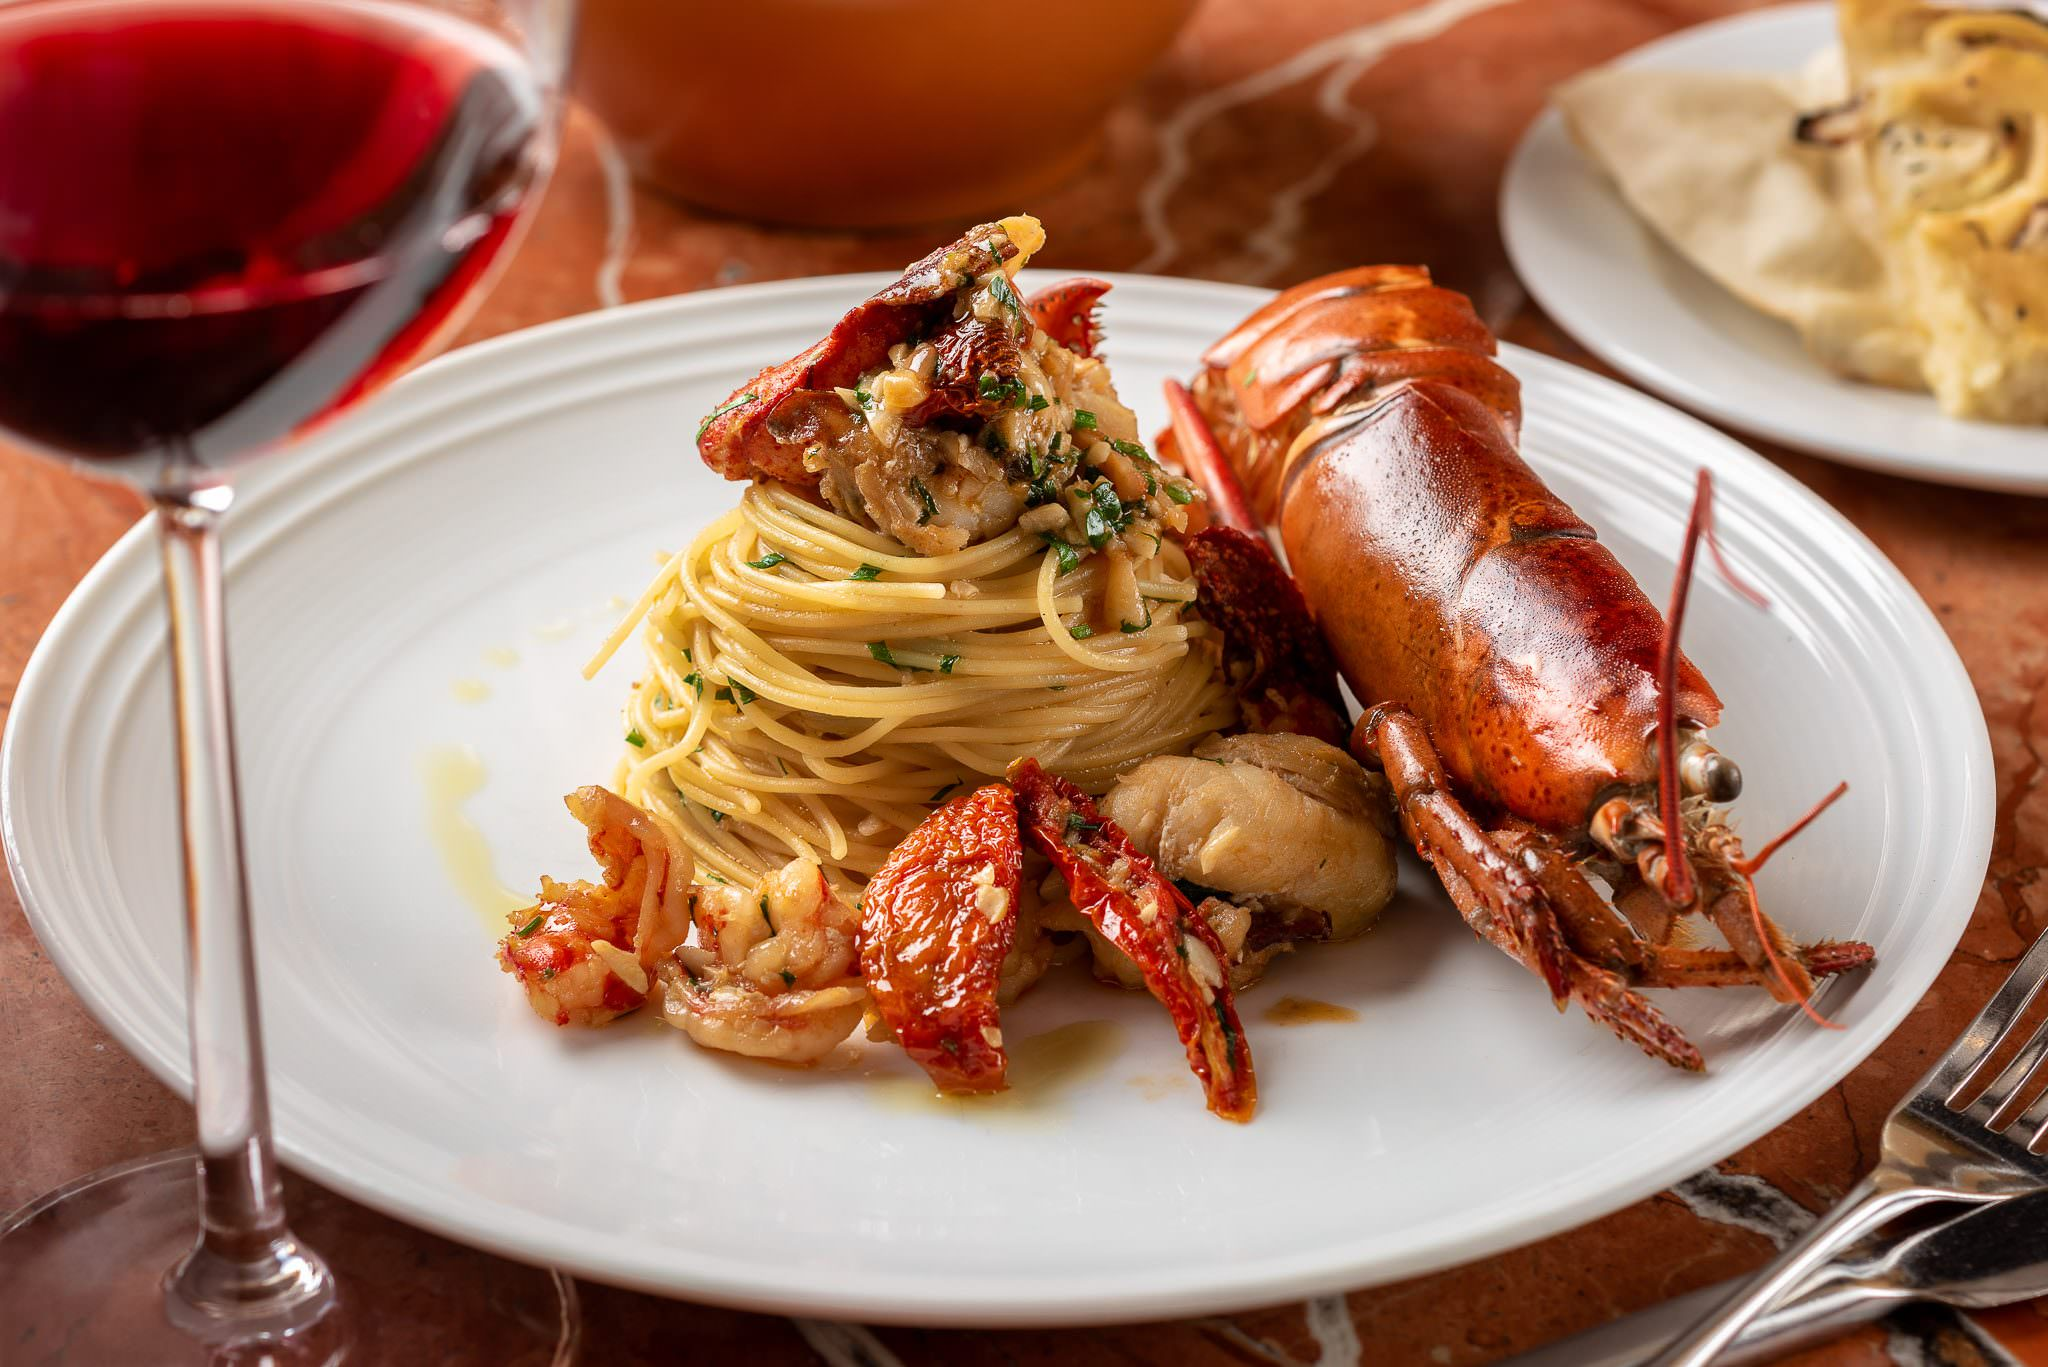 Angel Hair pasta with Live Maine Lobster with aglio, olio, pepperoncino